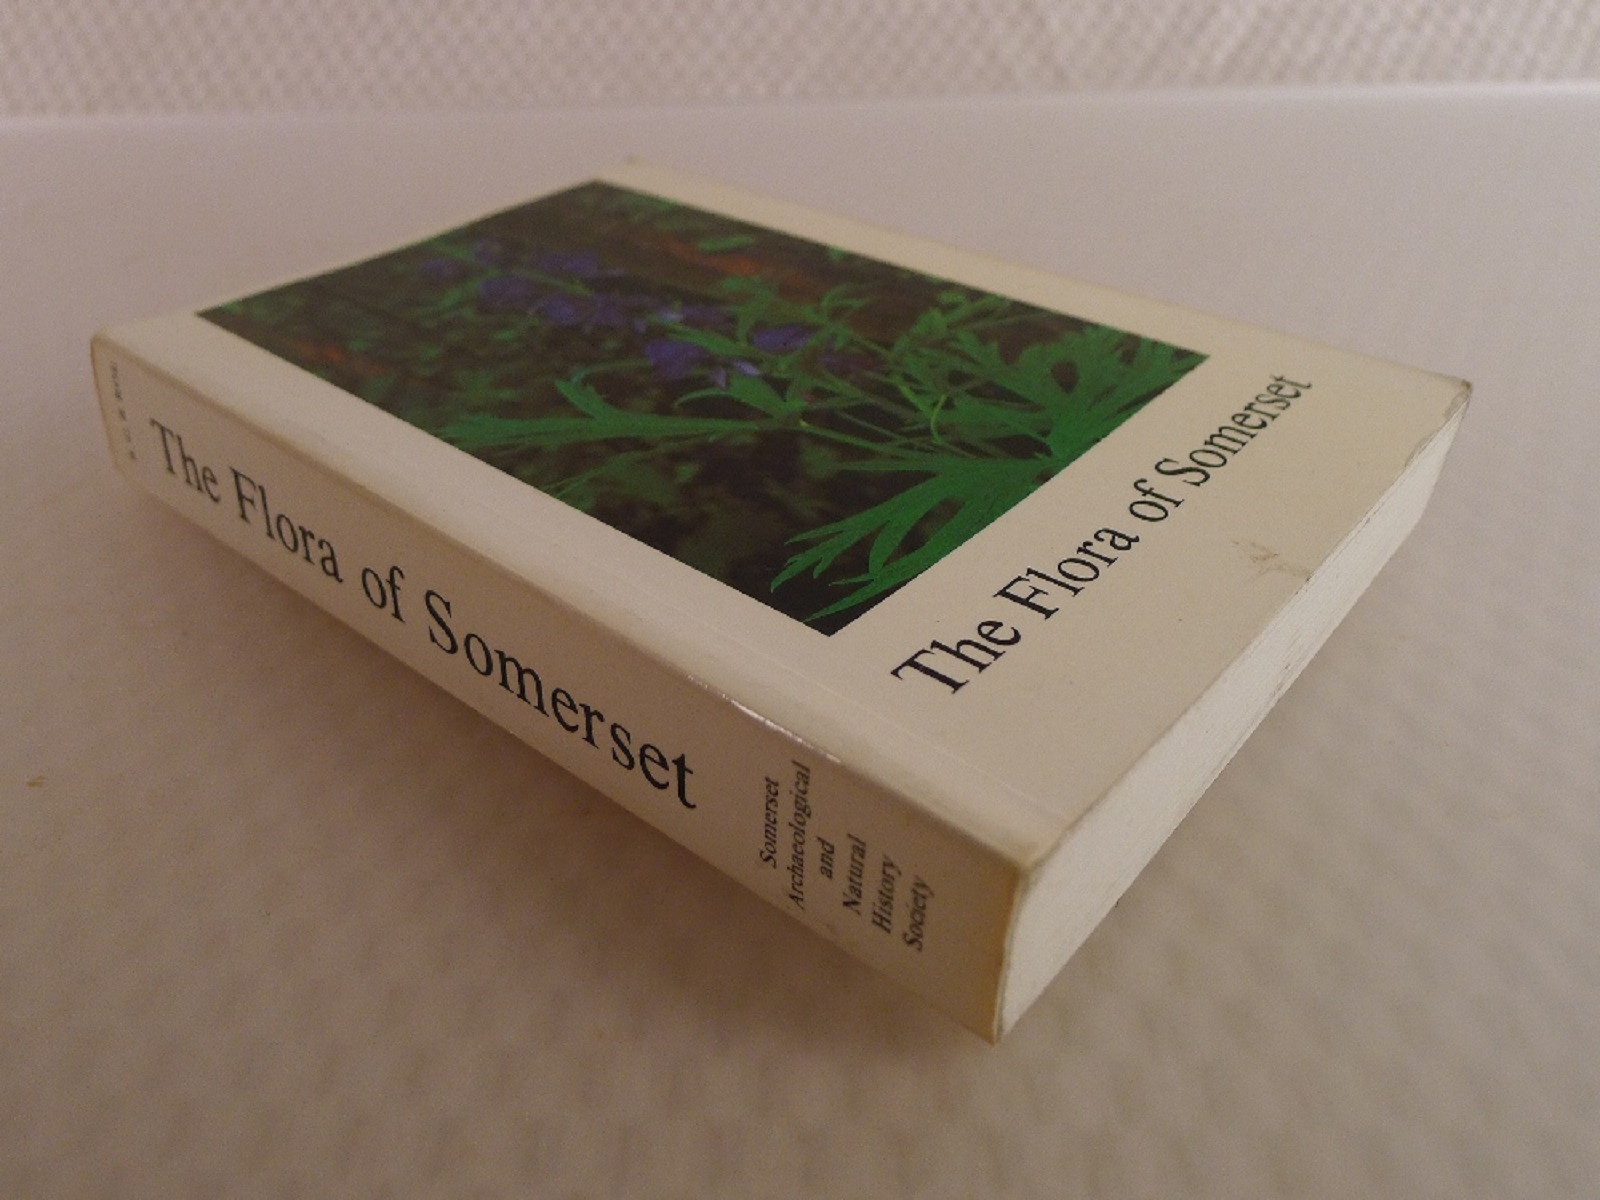 2 Books The Flora of The Bristol Region by Ian Green, Rupert Higgins, Clare Kitchen and Mark Kitchen - Image 7 of 8